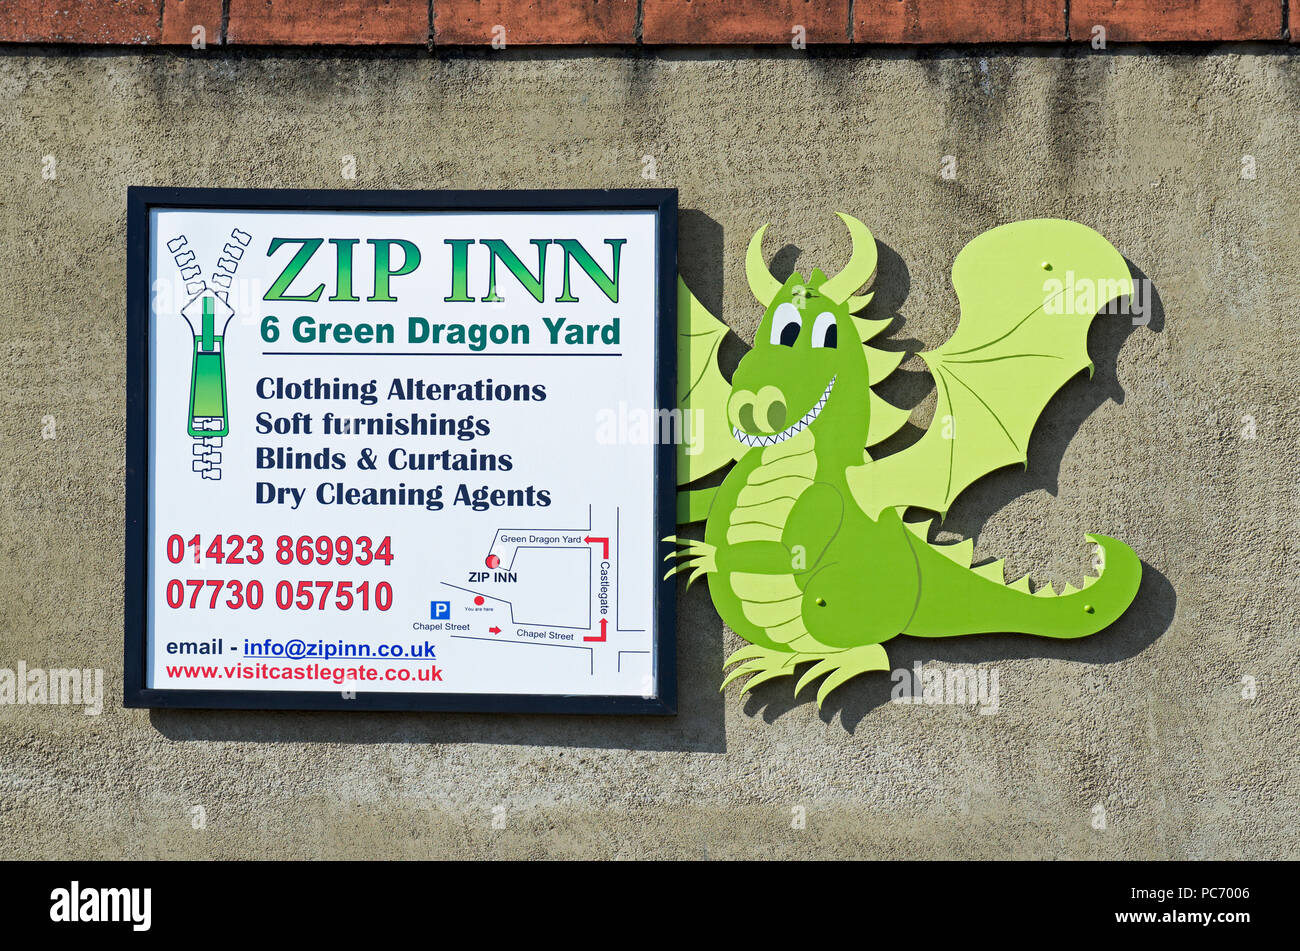 Sign for the Zip Inn, Green Dragon Yard, Knaresborough, North Yorkshire, England UK - Stock Image